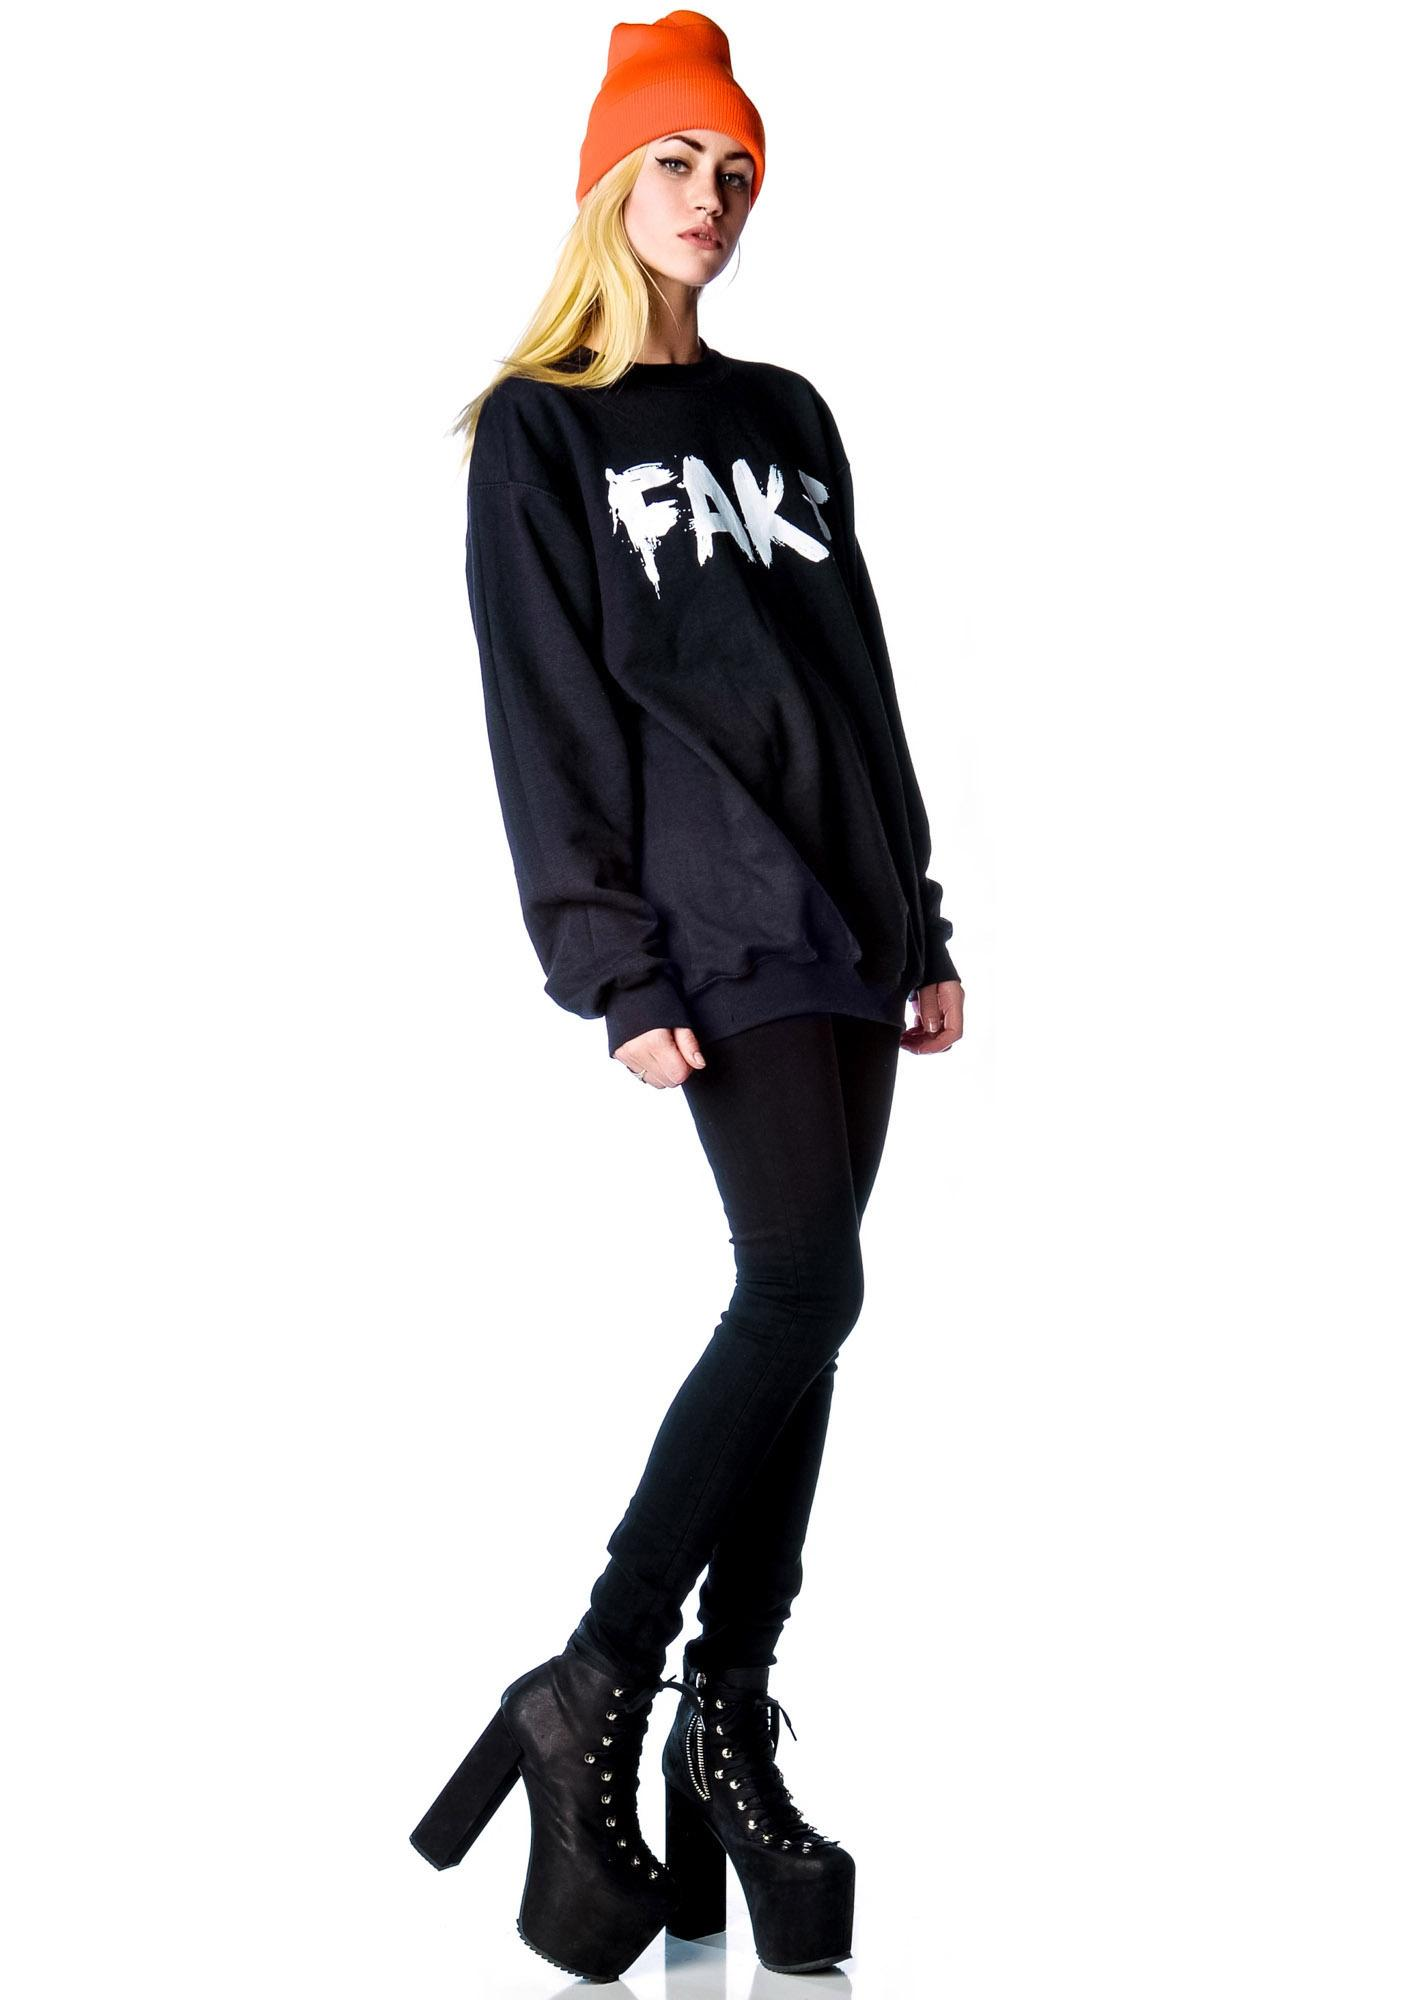 Petals and Peacocks Fake Sweatshirt